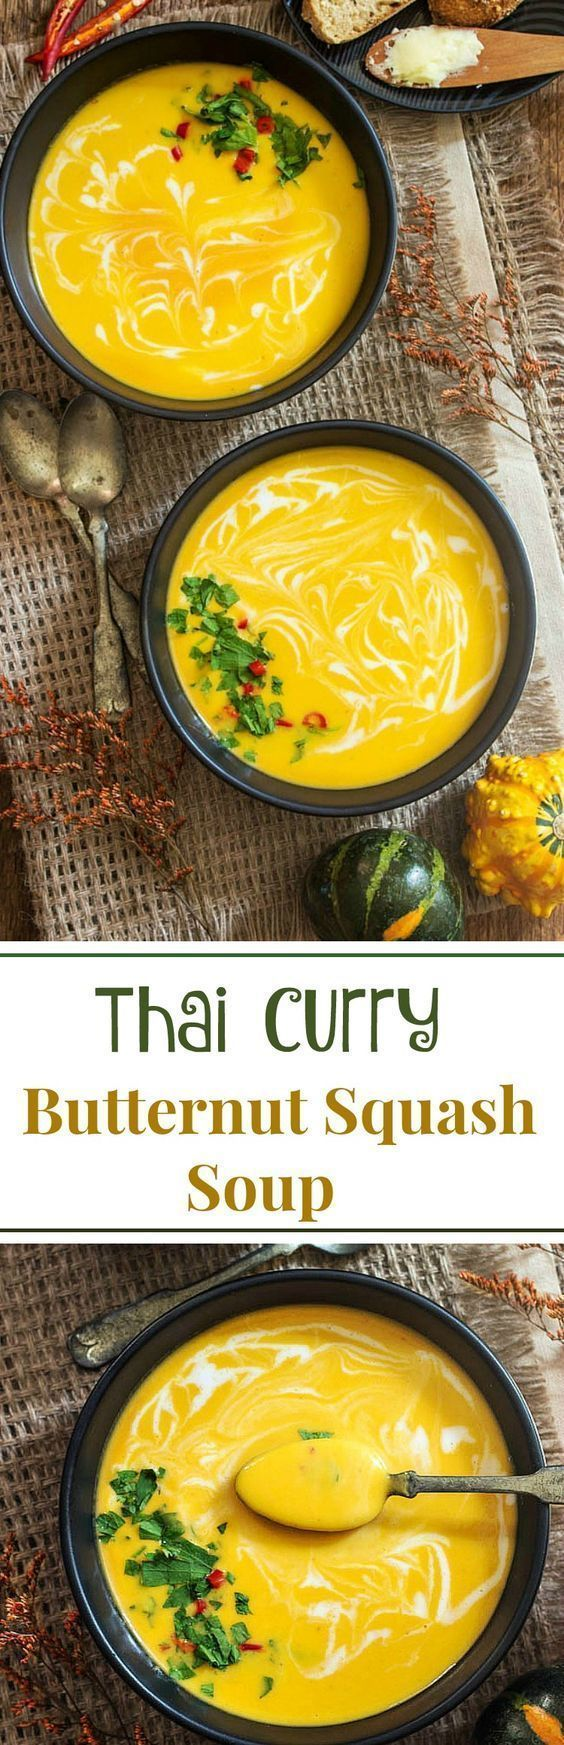 This Thai Curry Butternut Squash soup is the perfect transition from summer to fall because it's smooth, creamy and shines with bright, beautiful autumn colours.